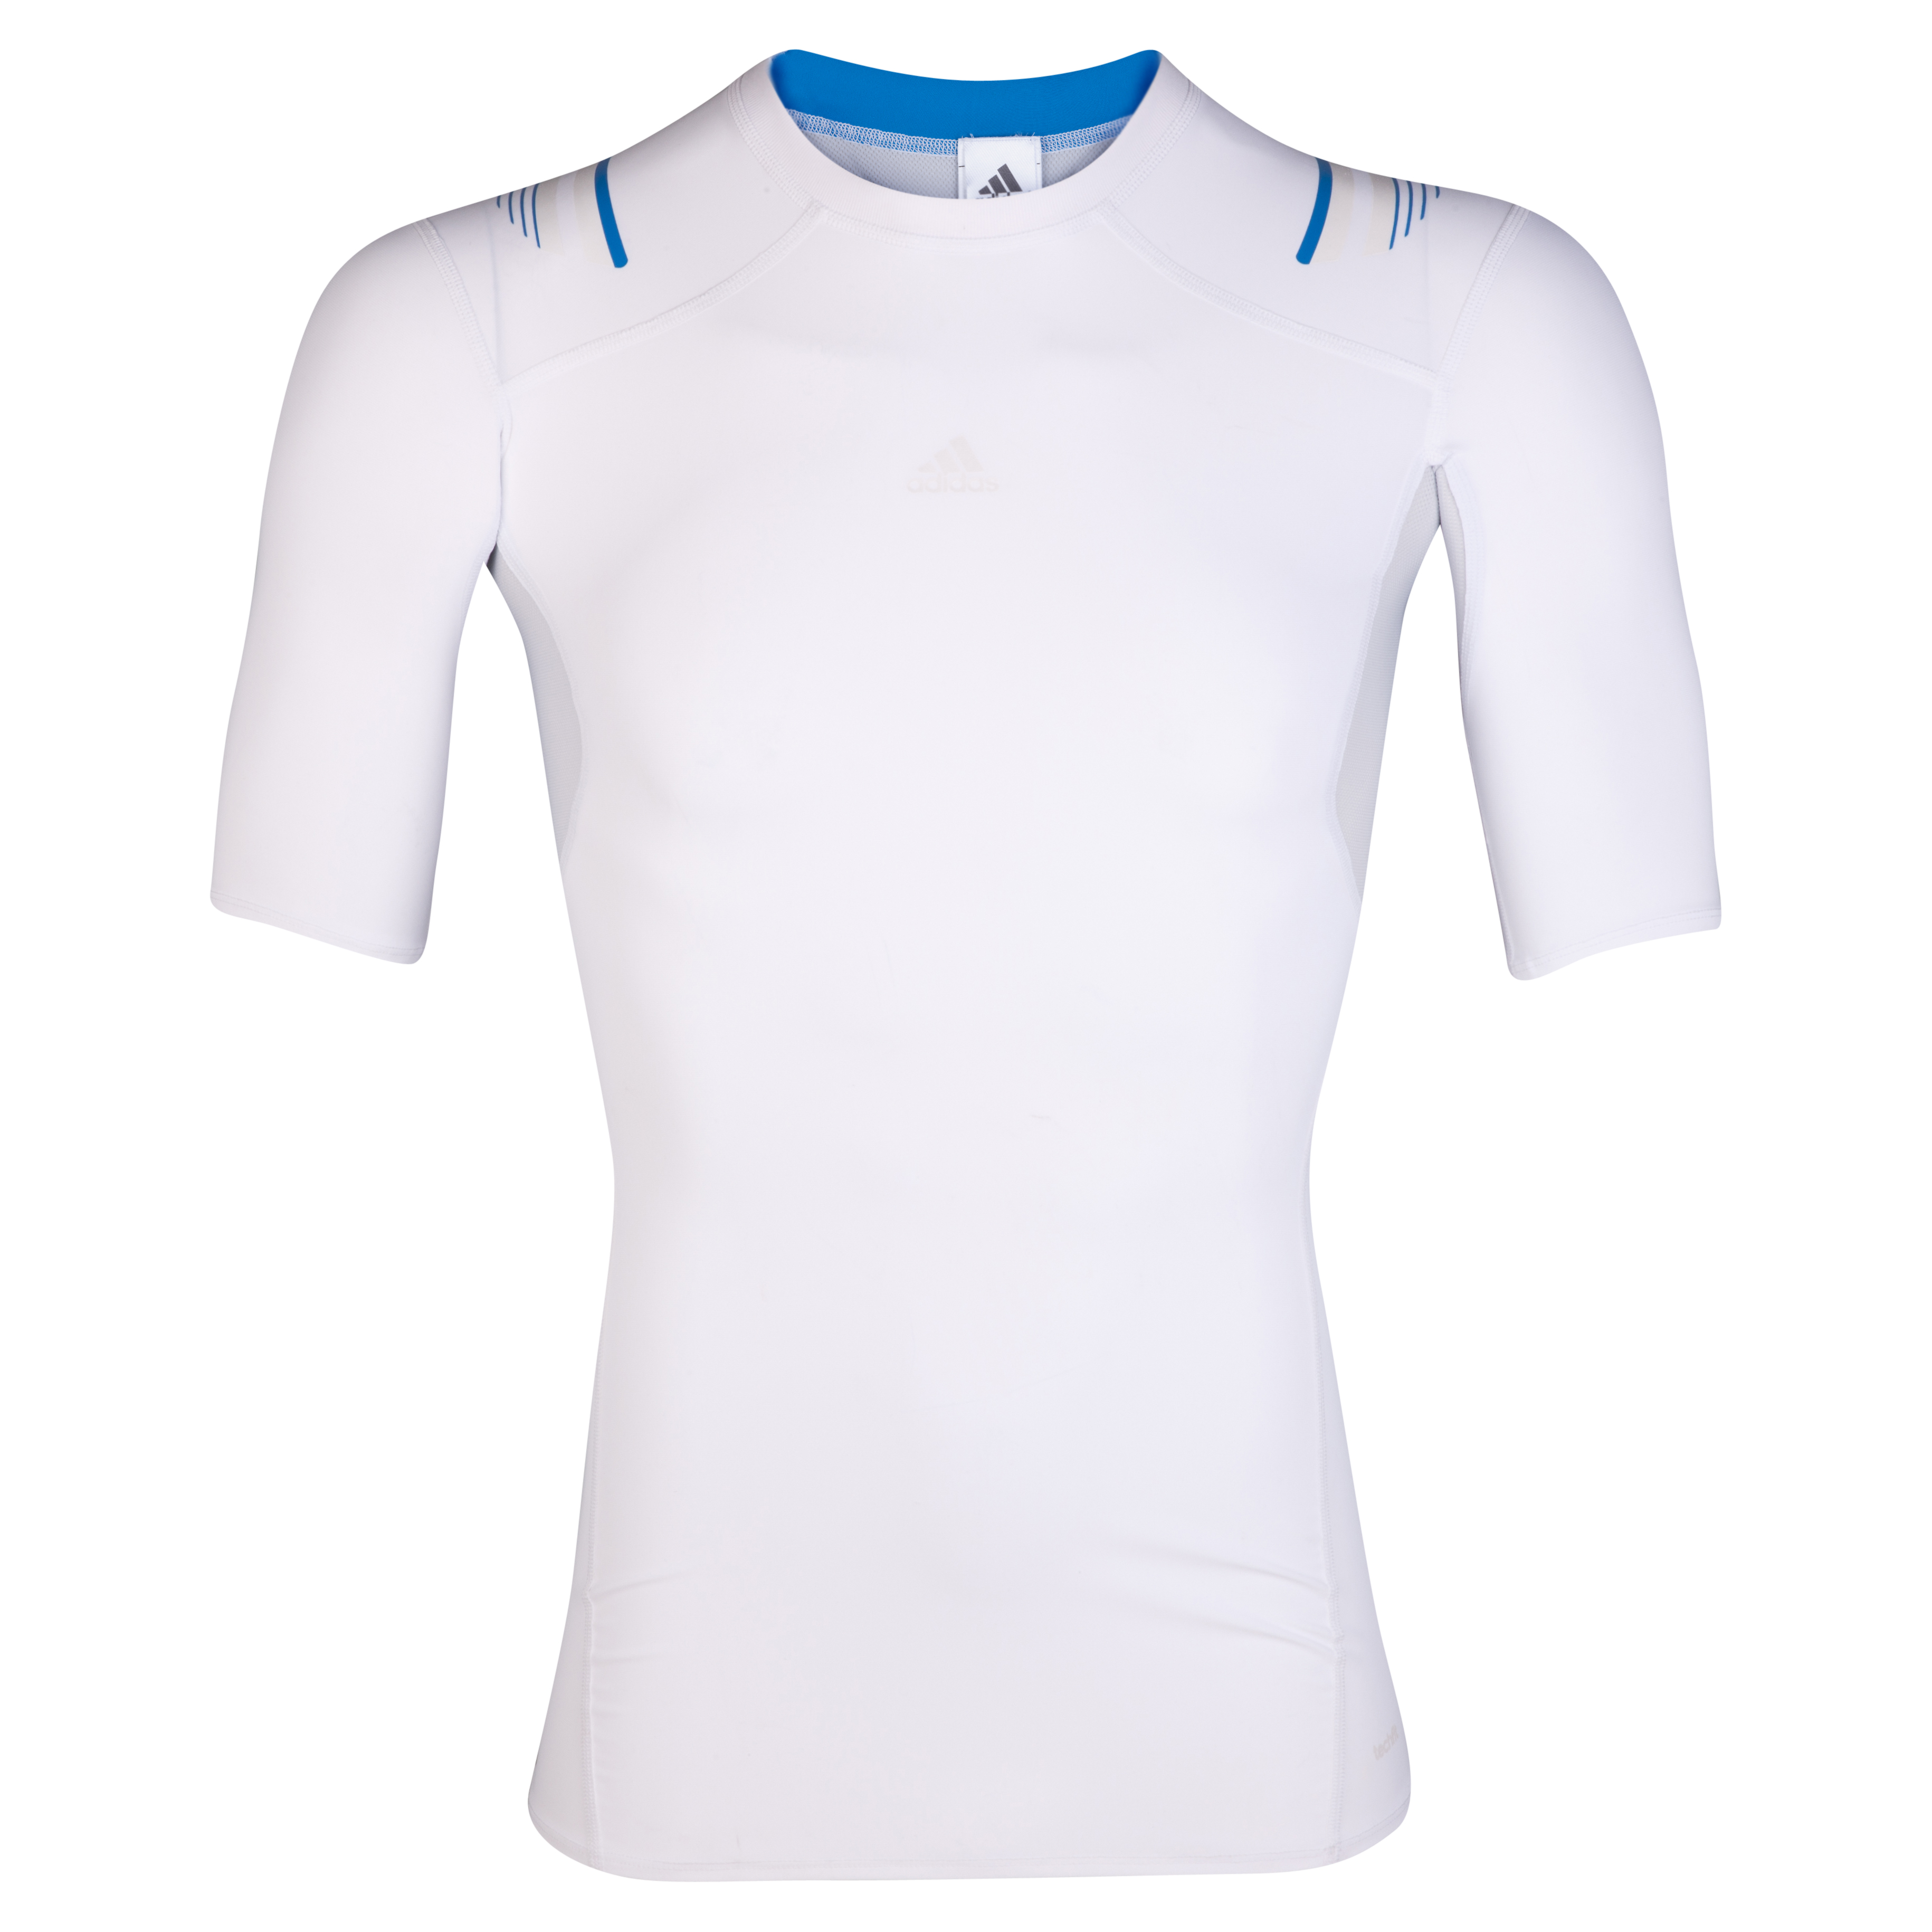 adidas TechFit PowerWeb Baselayer Top - Short Sleeve - White